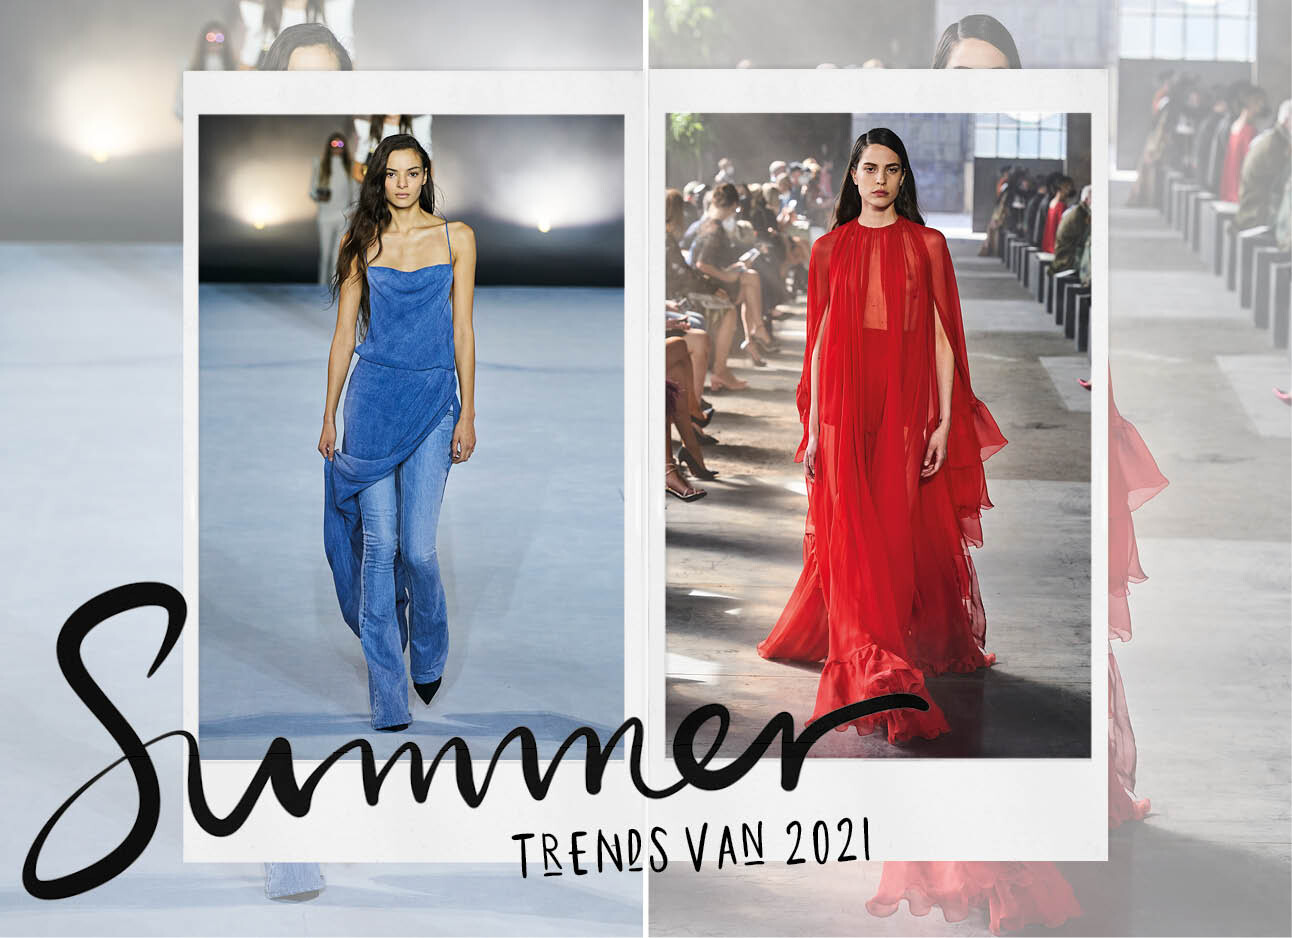 De 5 summer dress trends van 2021